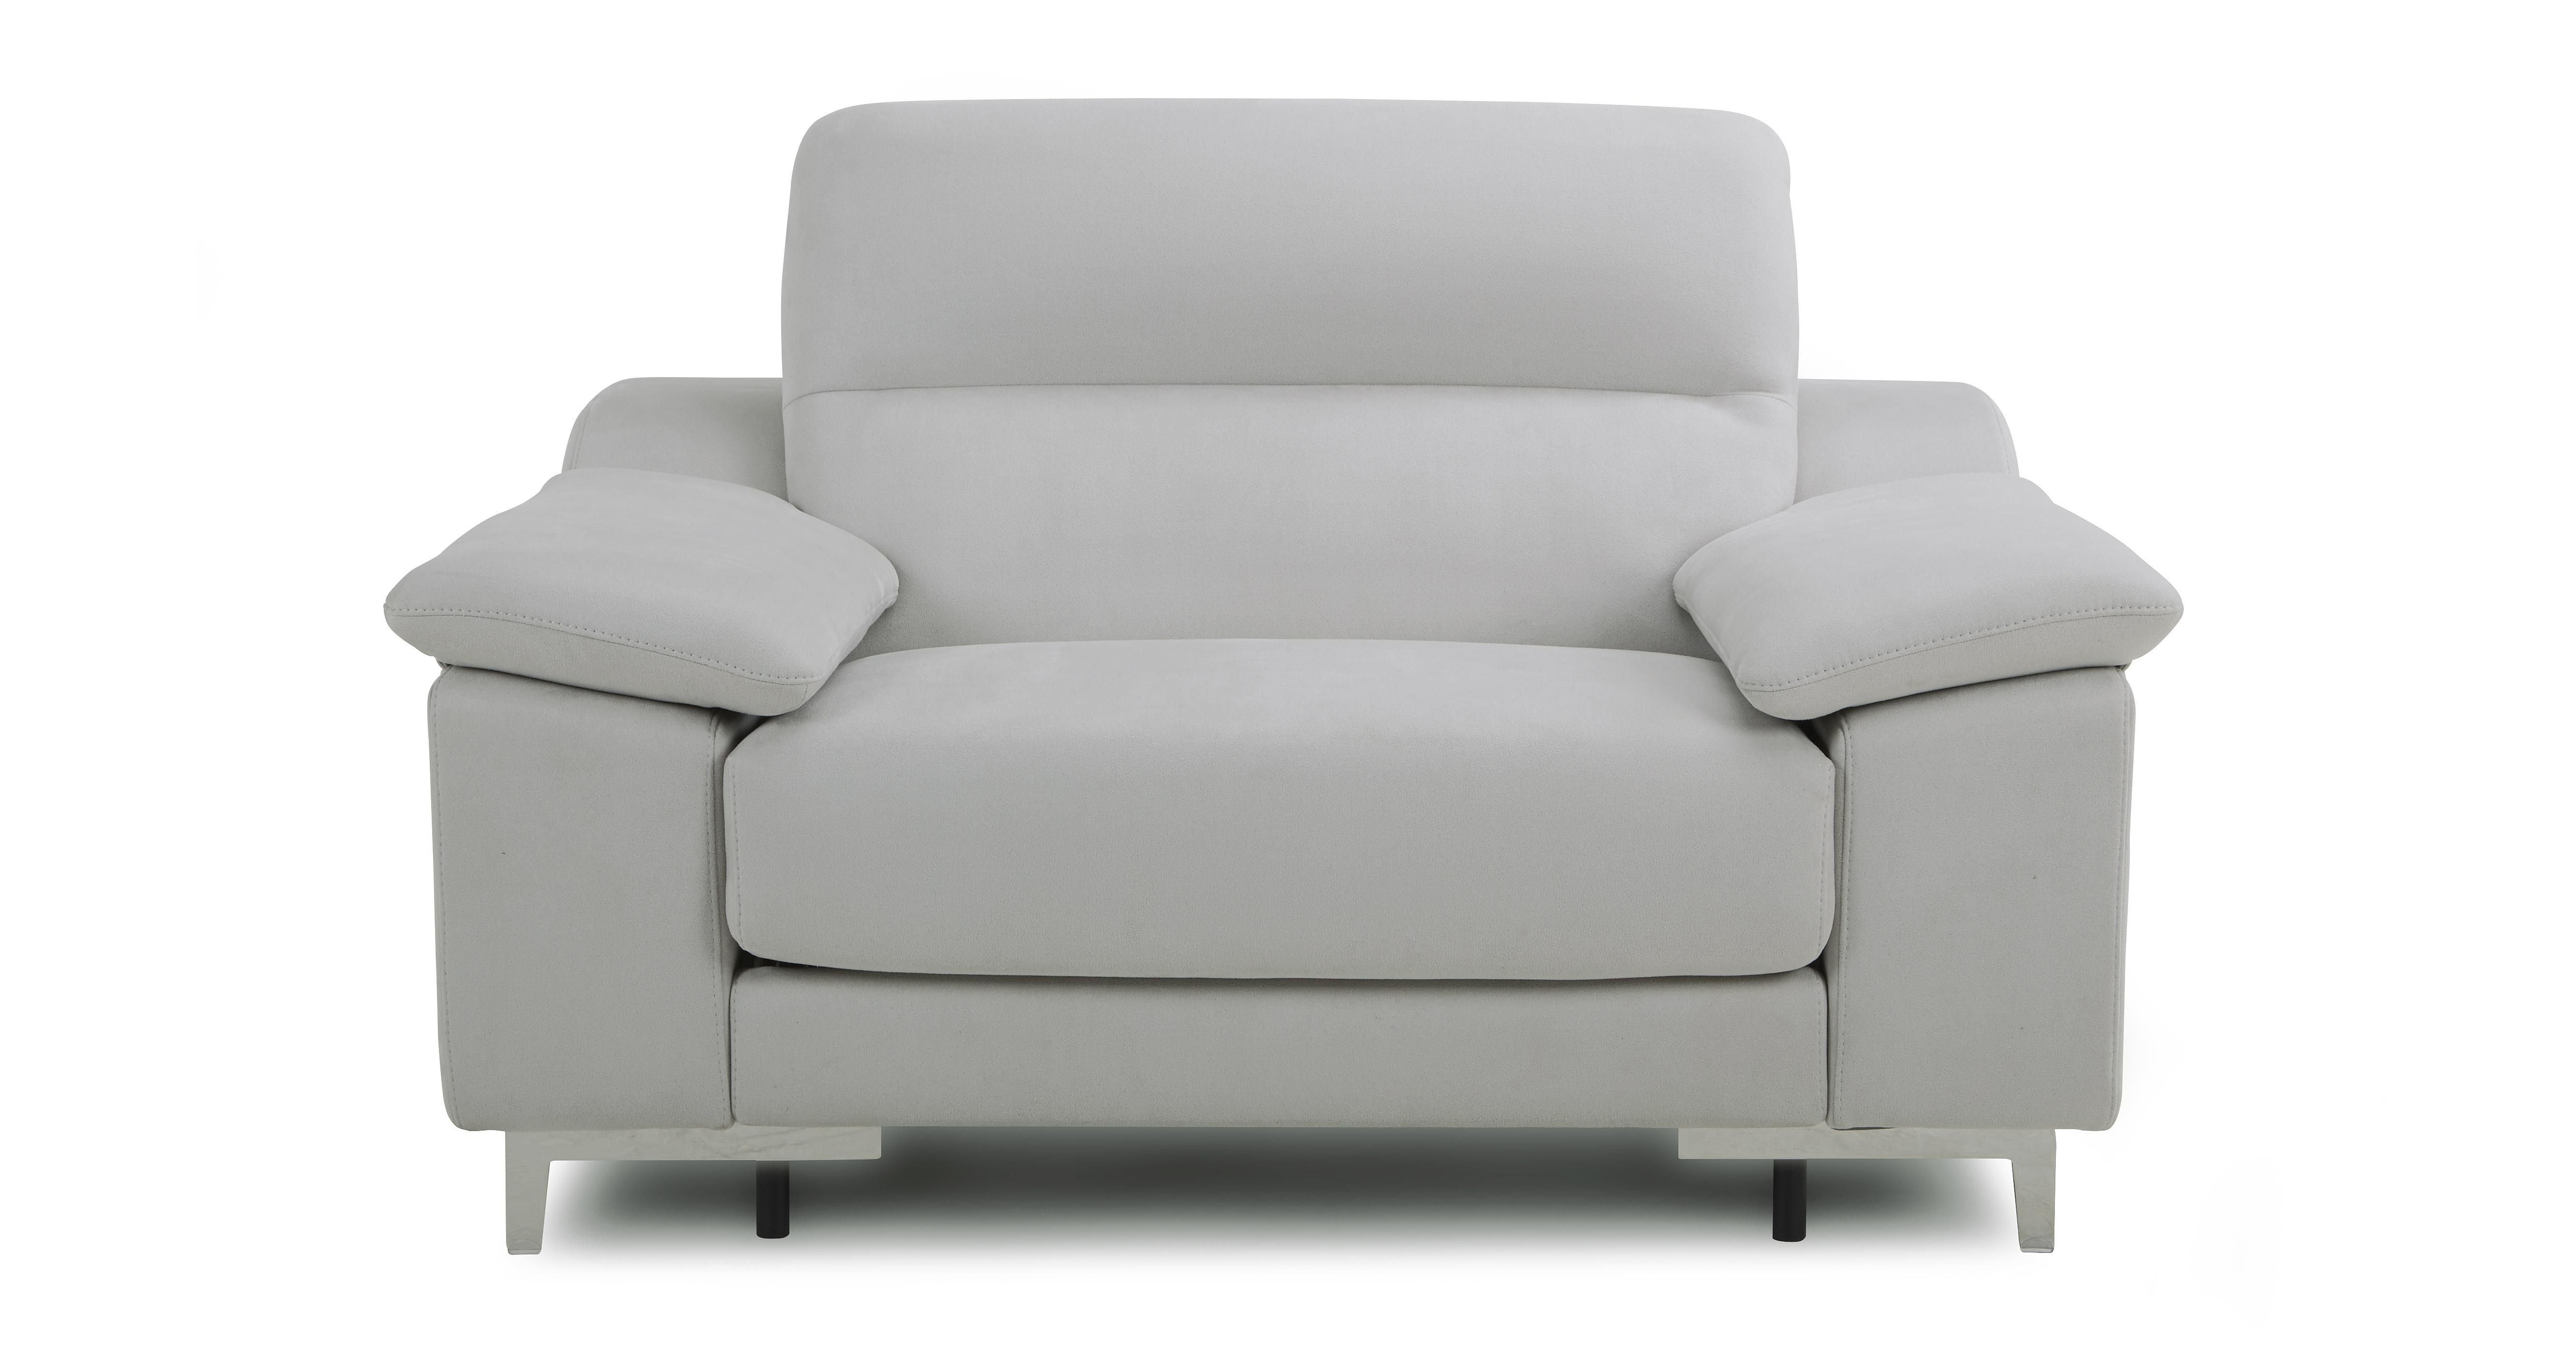 Snooze Single Beds 15 Best Collection Of Single Chair Sofa Bed Sofa Ideas